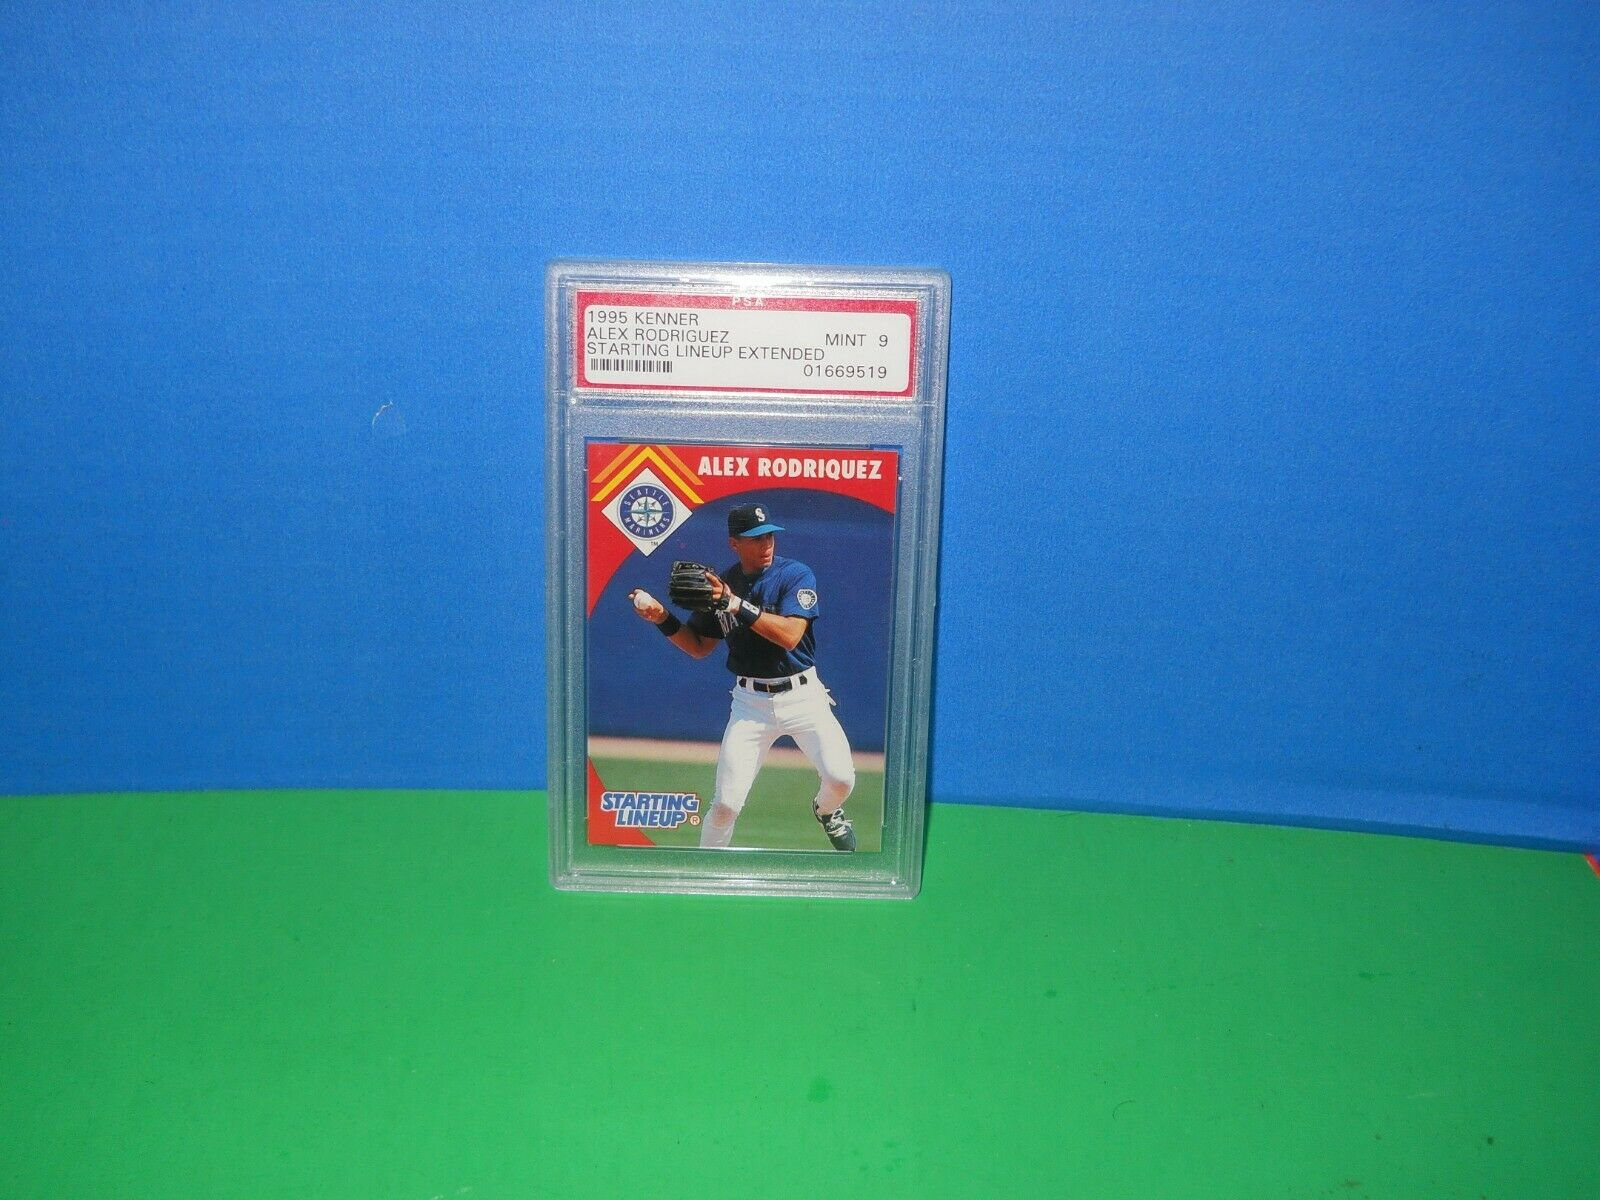 1995  ALEX RODRIGUEZ Seattle Mariners  CARD ONLY rare mint 9 grade